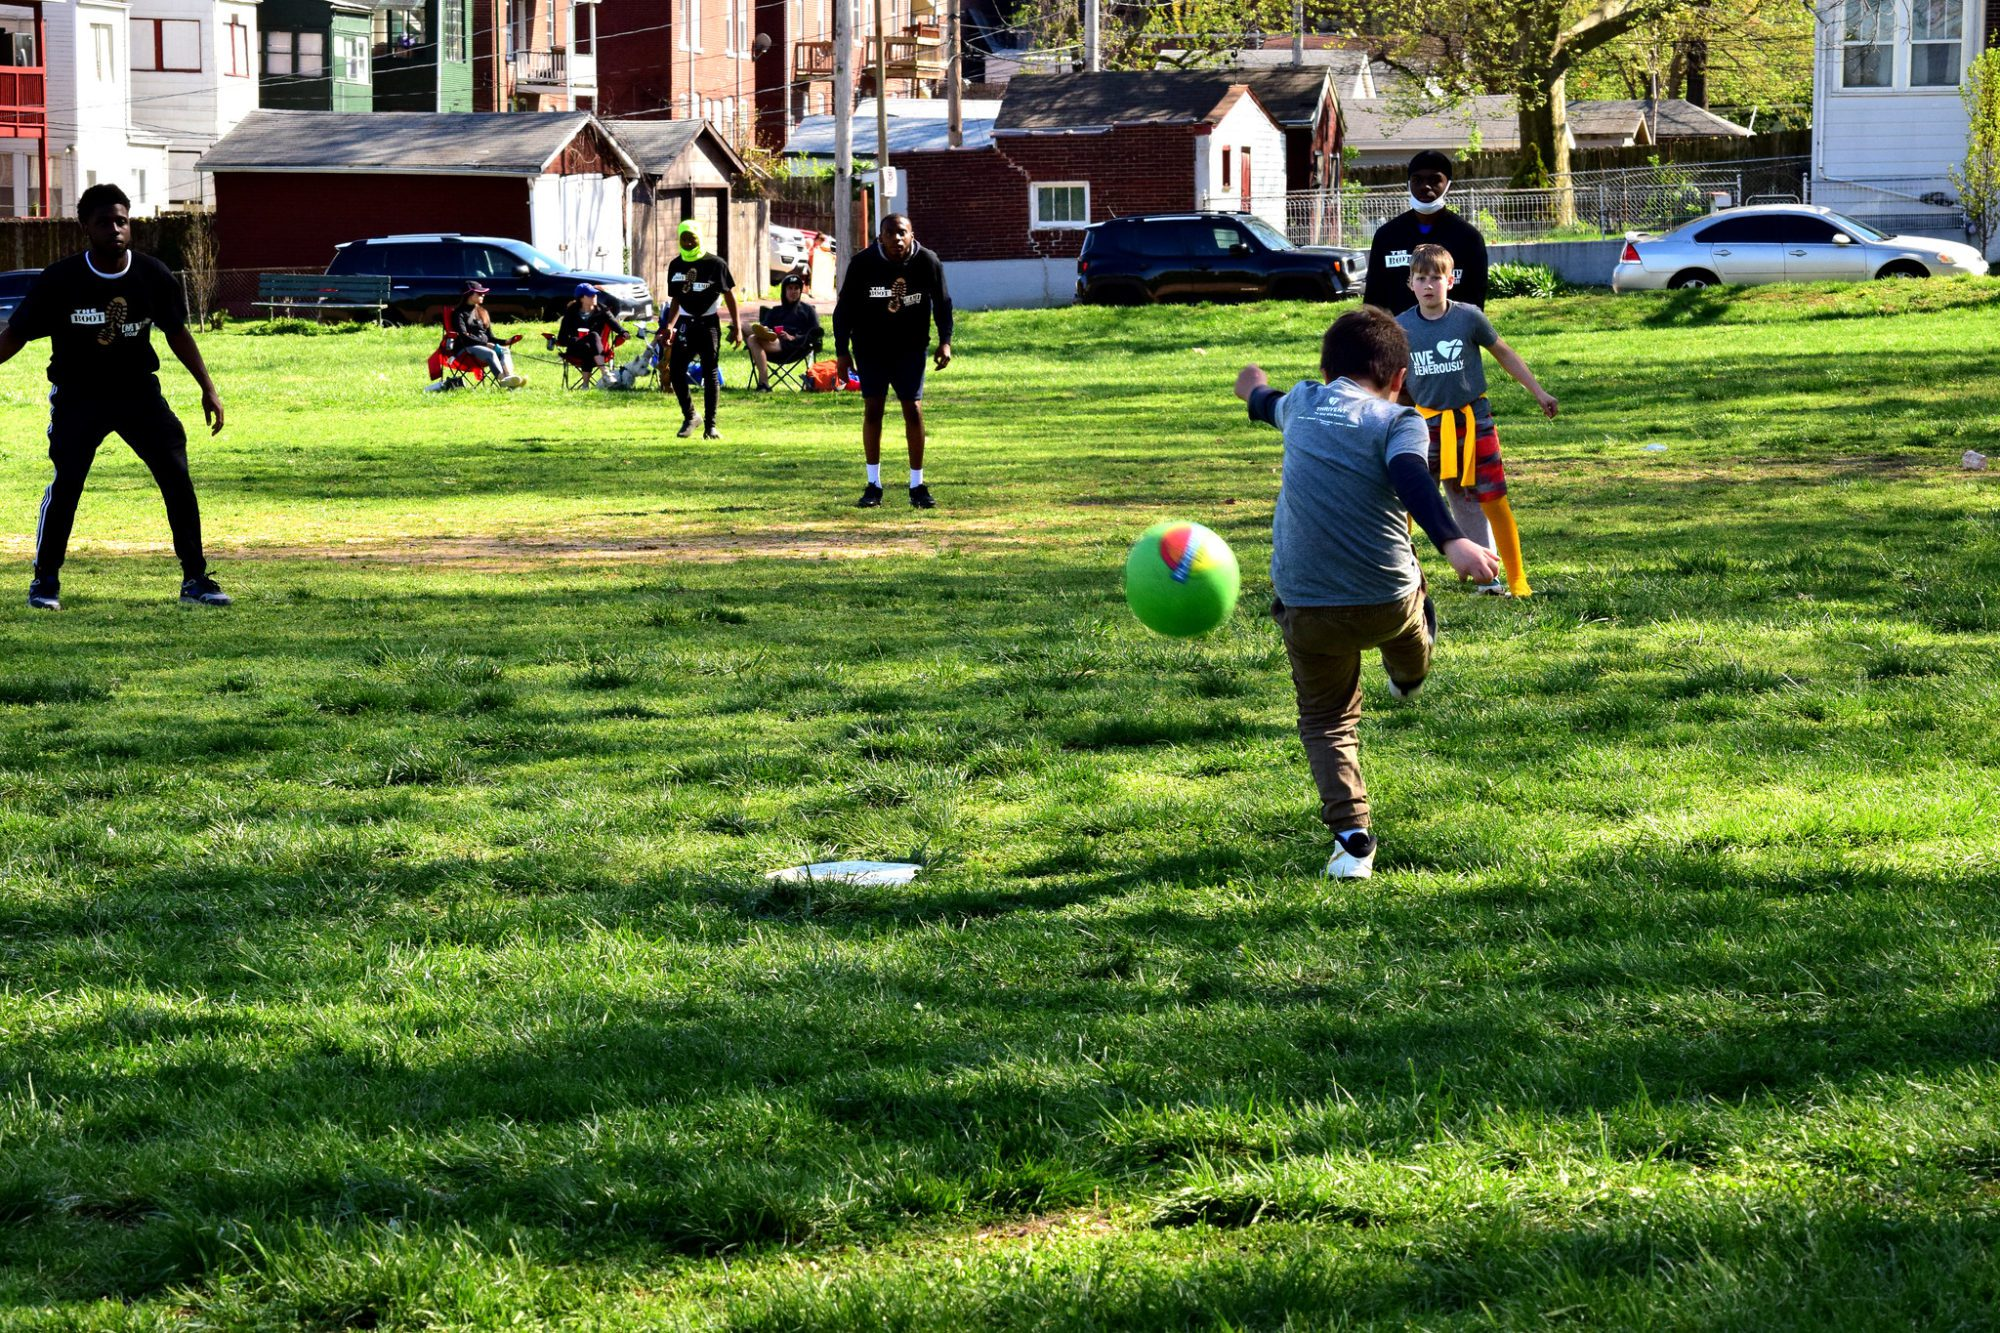 Playing kickball at Marquette Park in Dutchtown, St. Louis, MO.